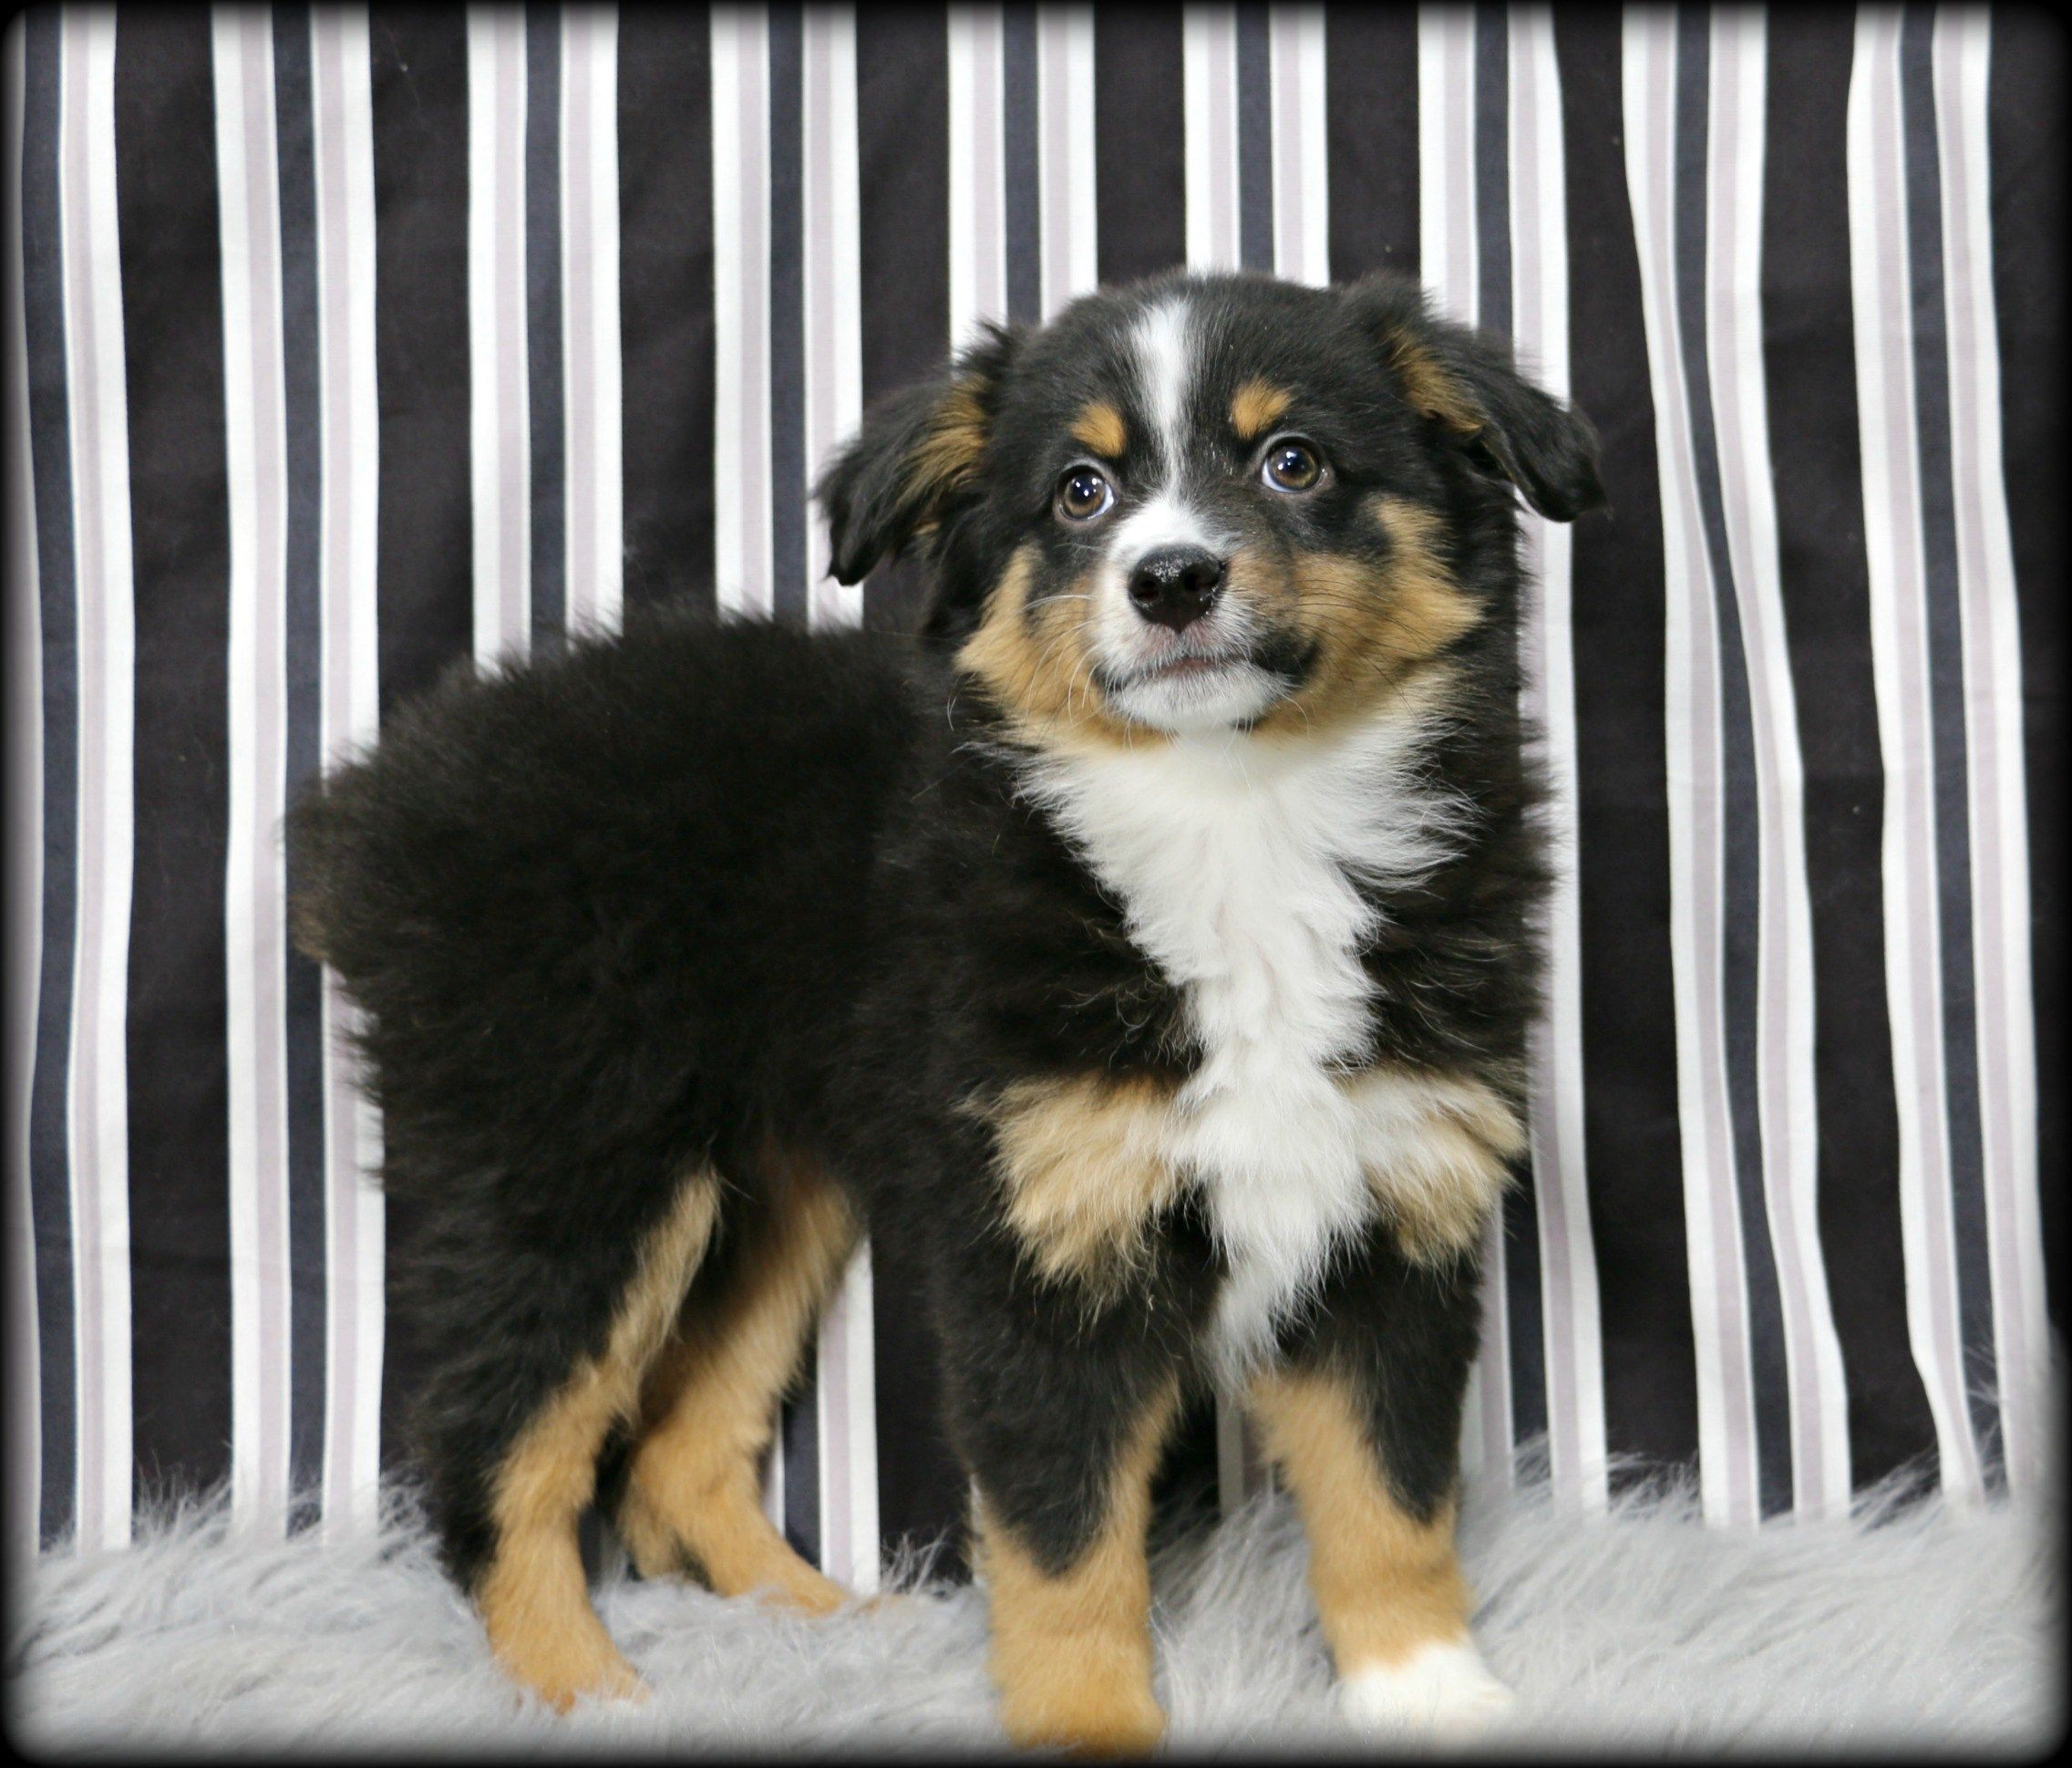 Petland Overland Park Has Australian Shepherd Puppies For Sale Check Out All Our Available Puppies Australianshep